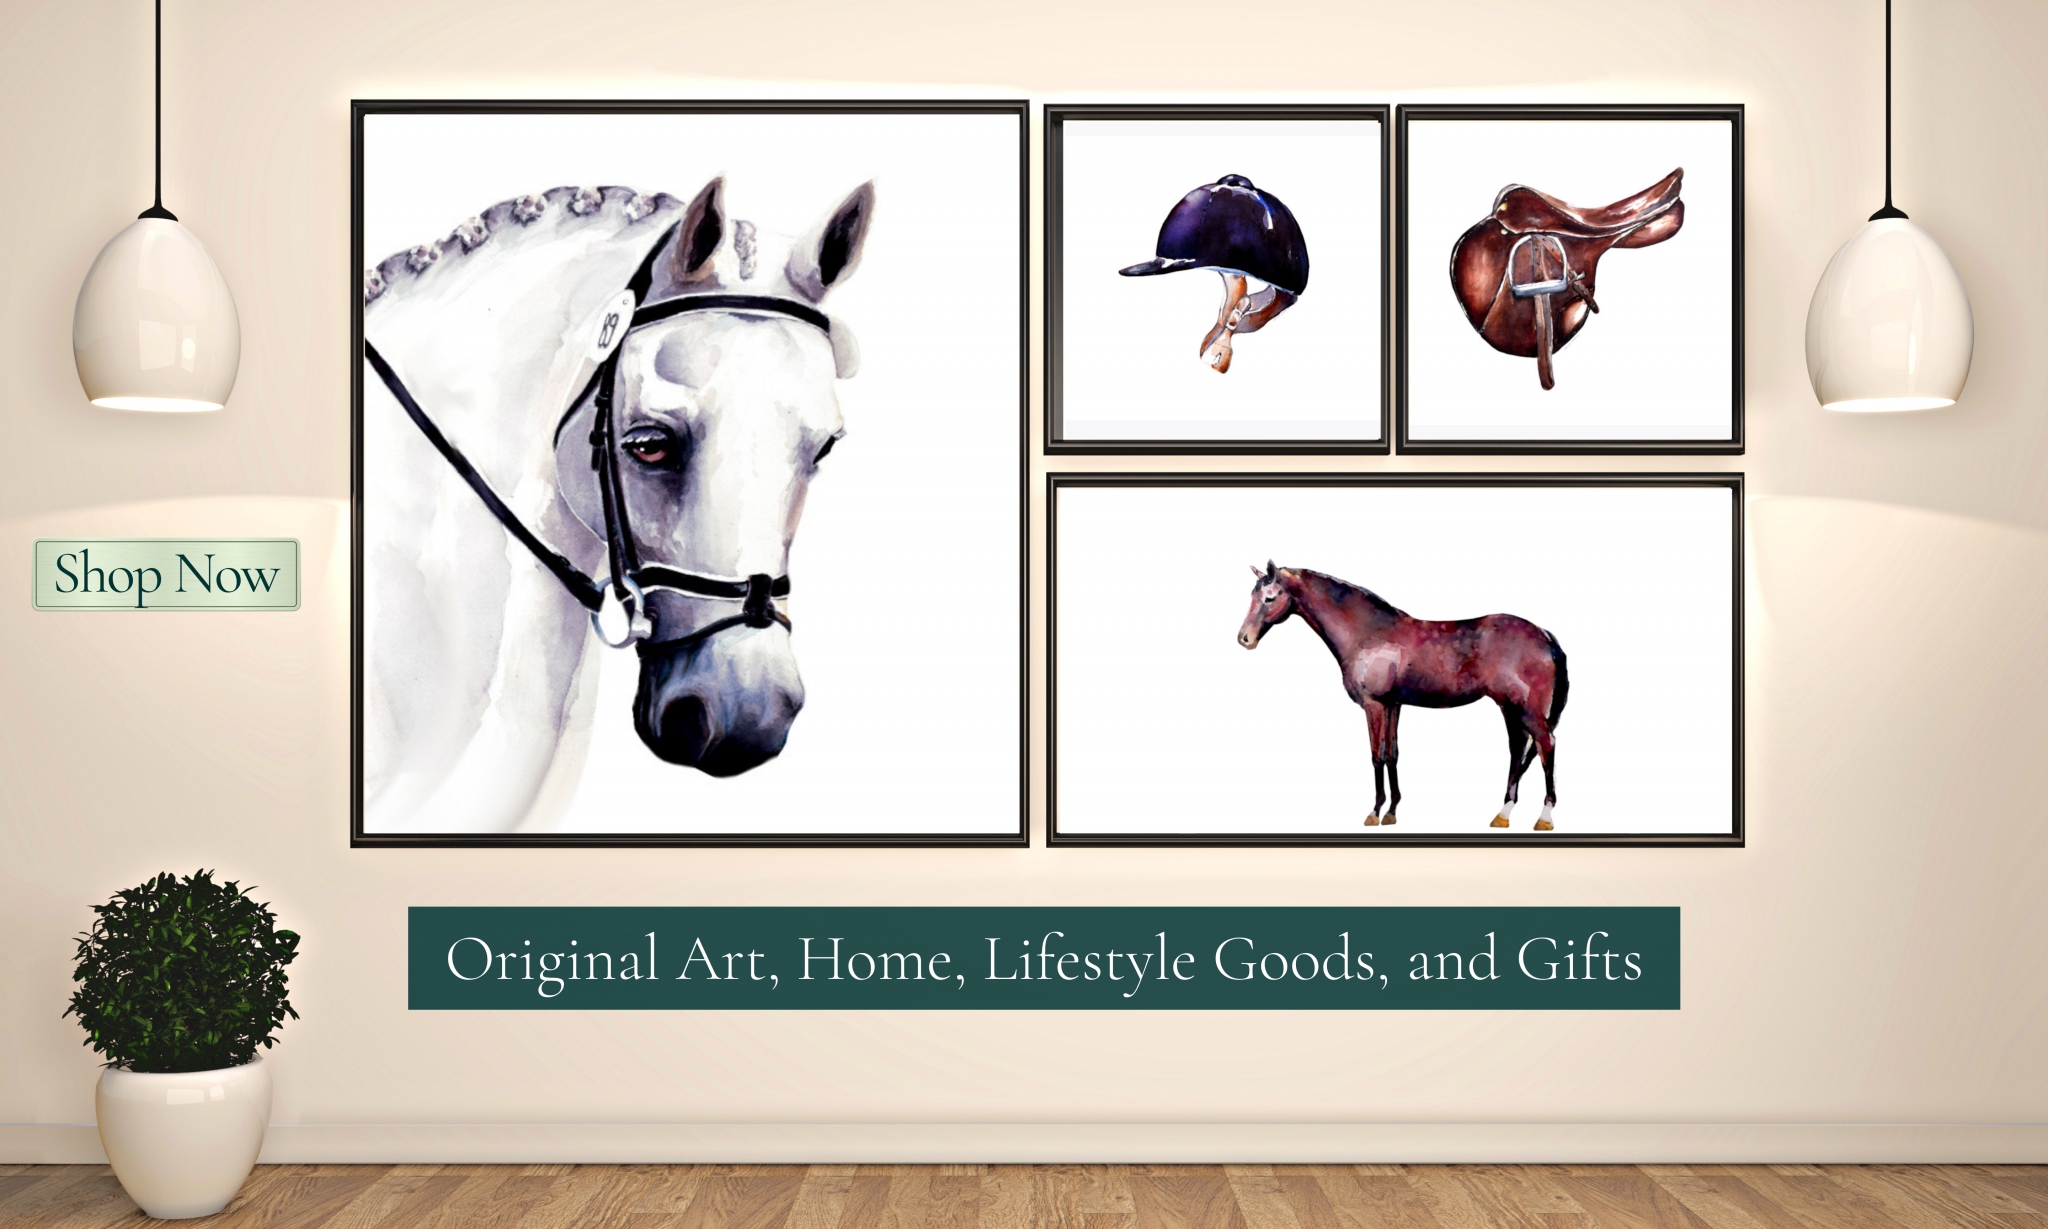 Horse themed art, home, lifestyle and gifts